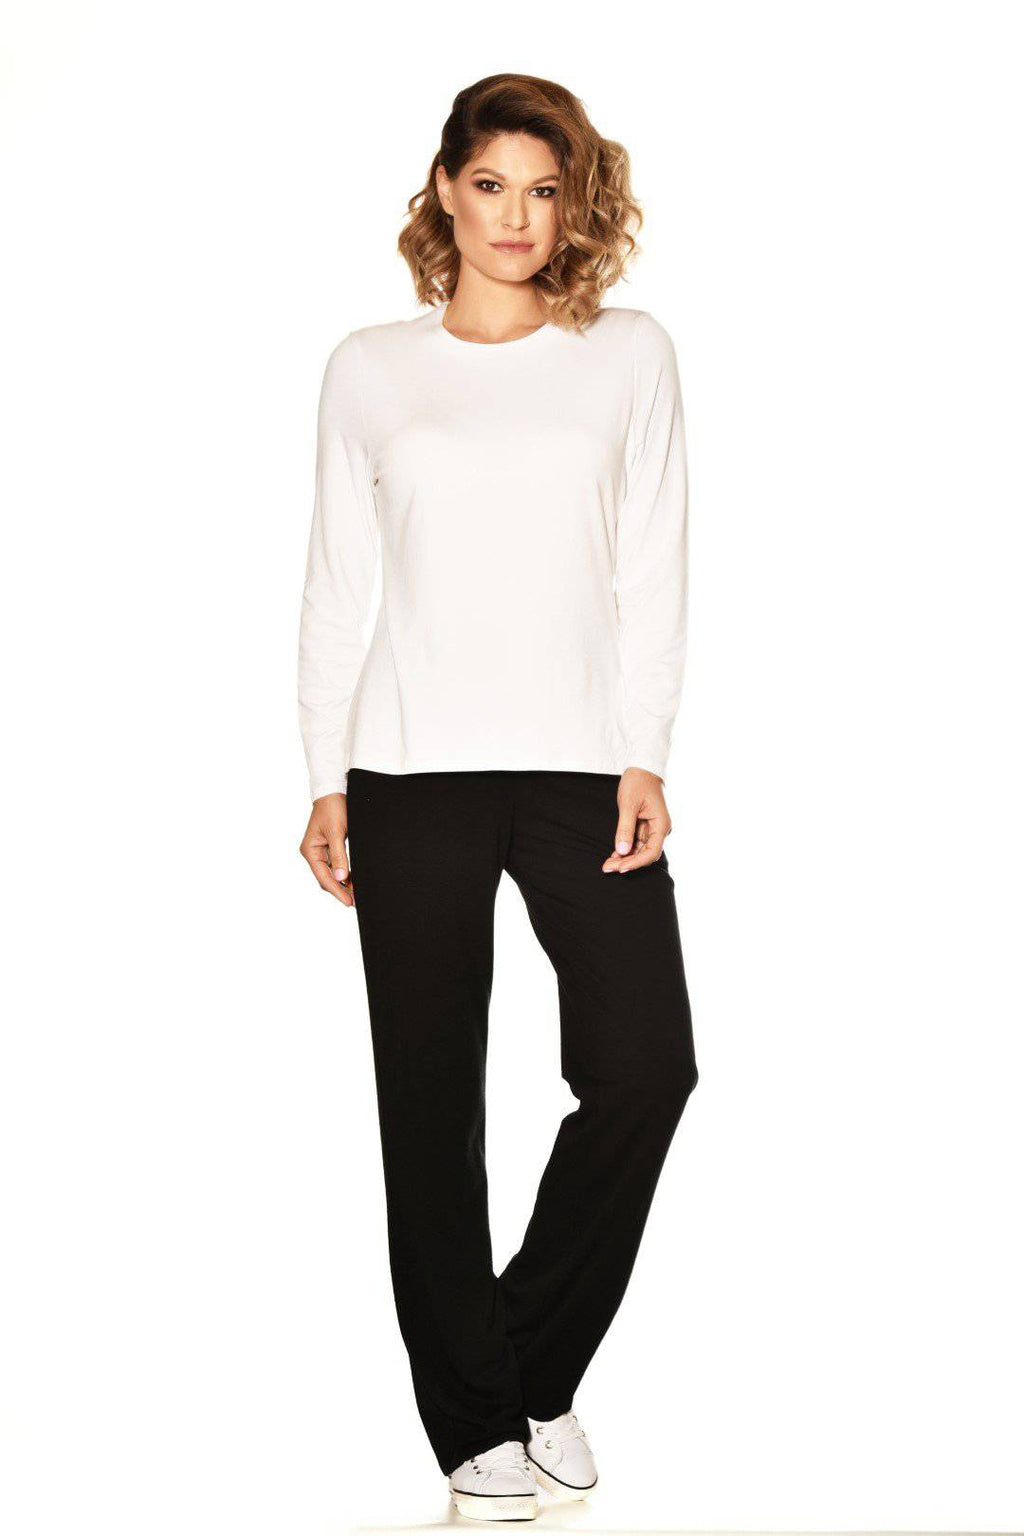 PAULA RYAN ESSENTIALS Easy Fit Long Sleeve Crew Neck Top - MicroModal - Top - Paula Ryan Essentials - Paula Ryan